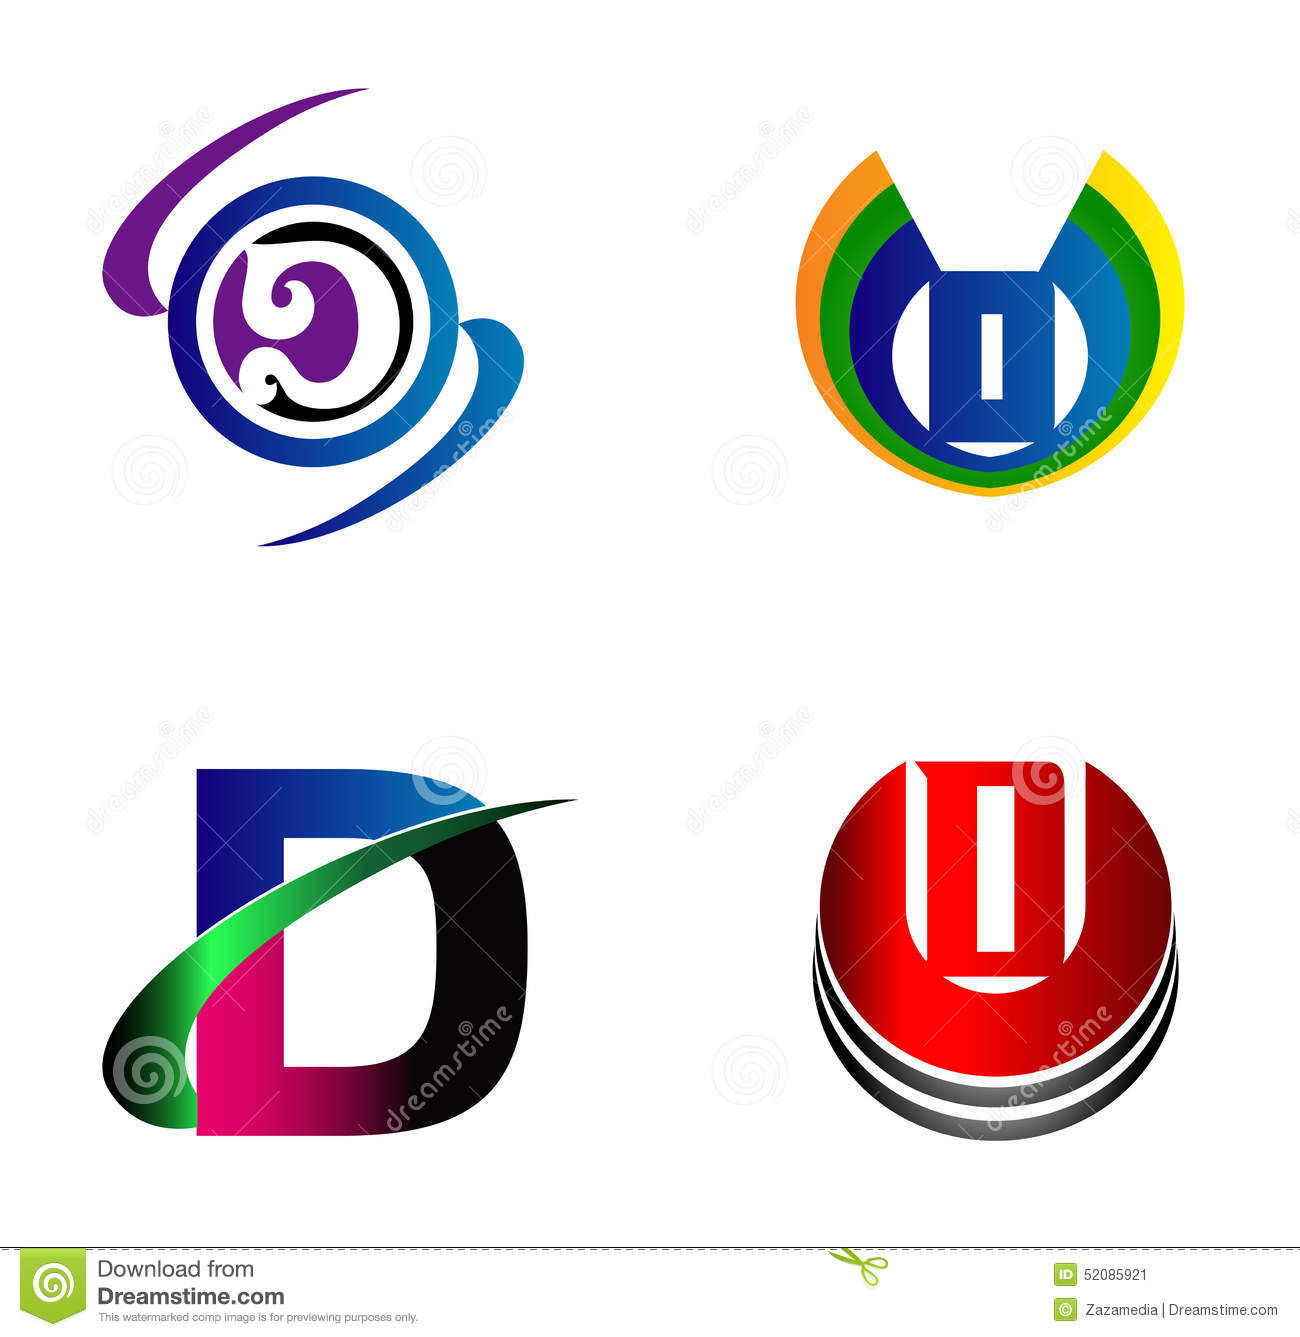 letter d logo design sample icon set stock illustration